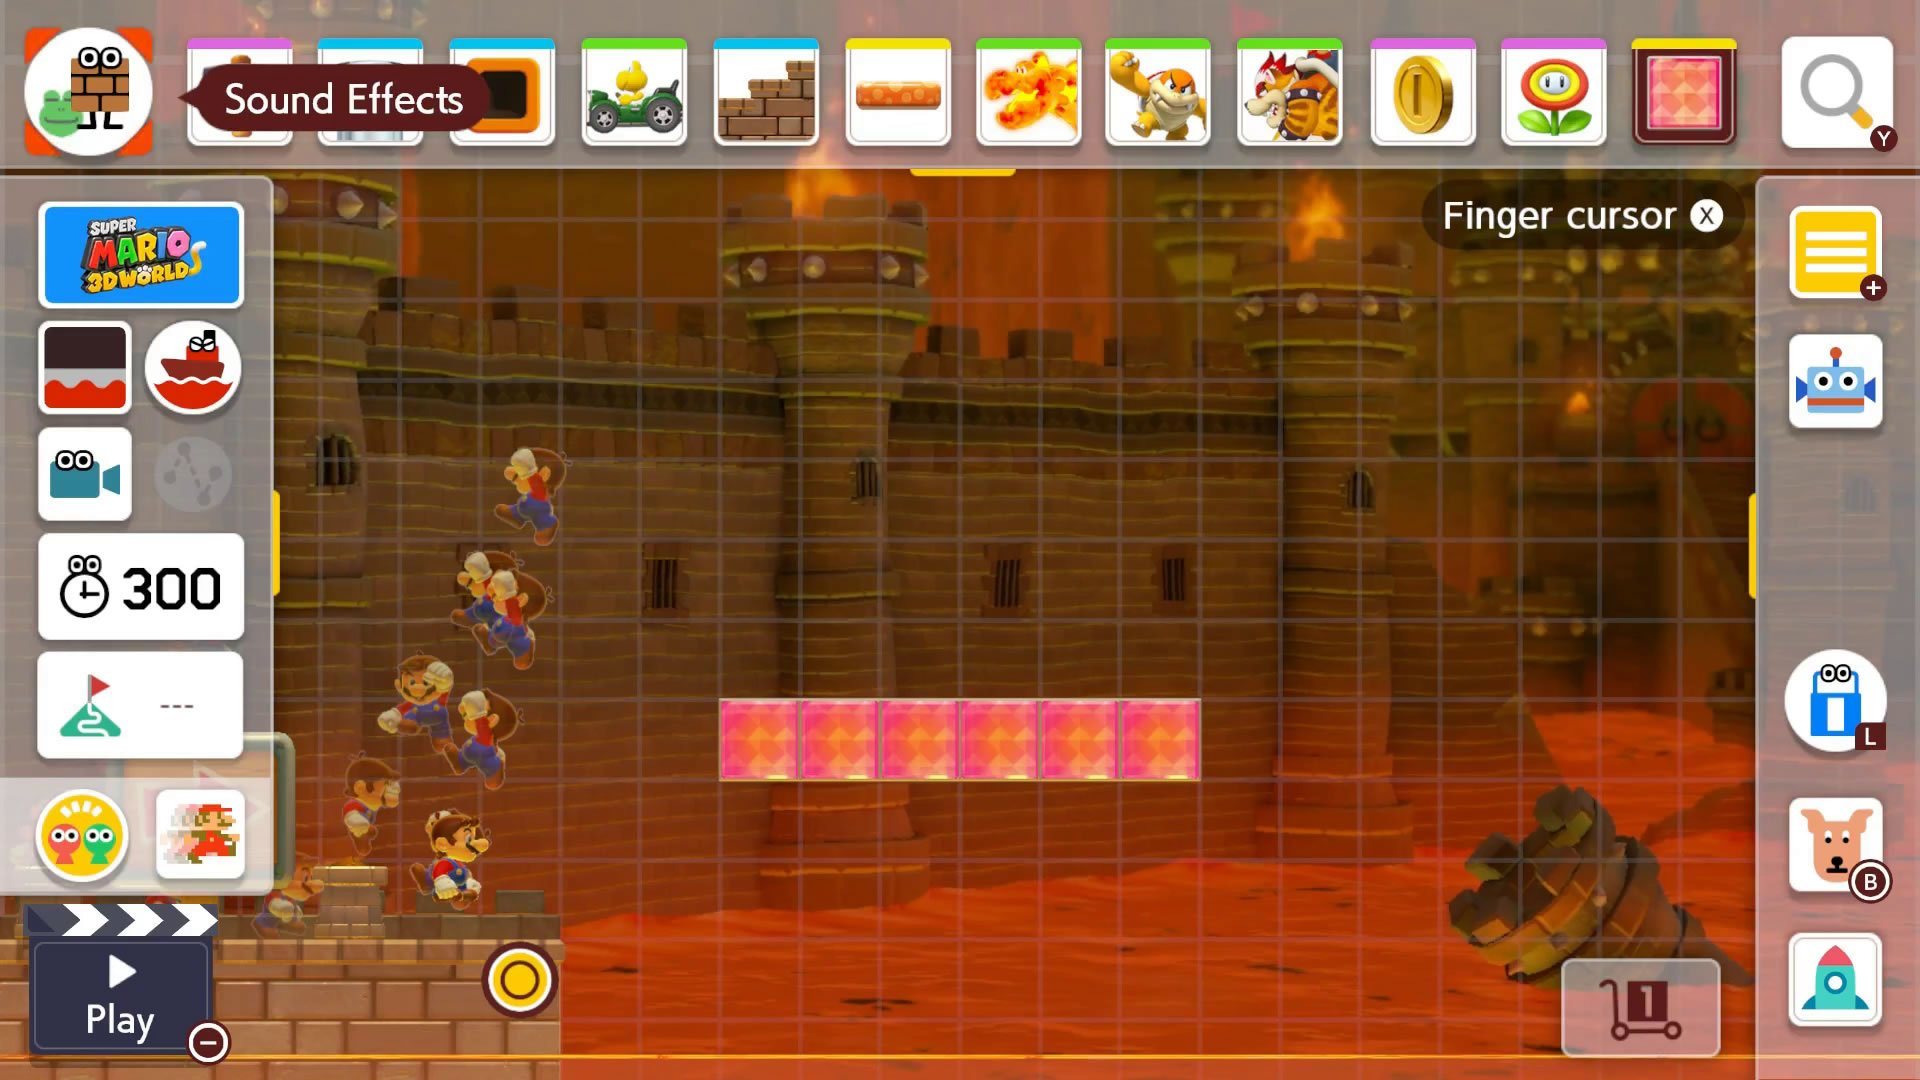 How to add sound effects in Super Mario Maker 2 Course Maker